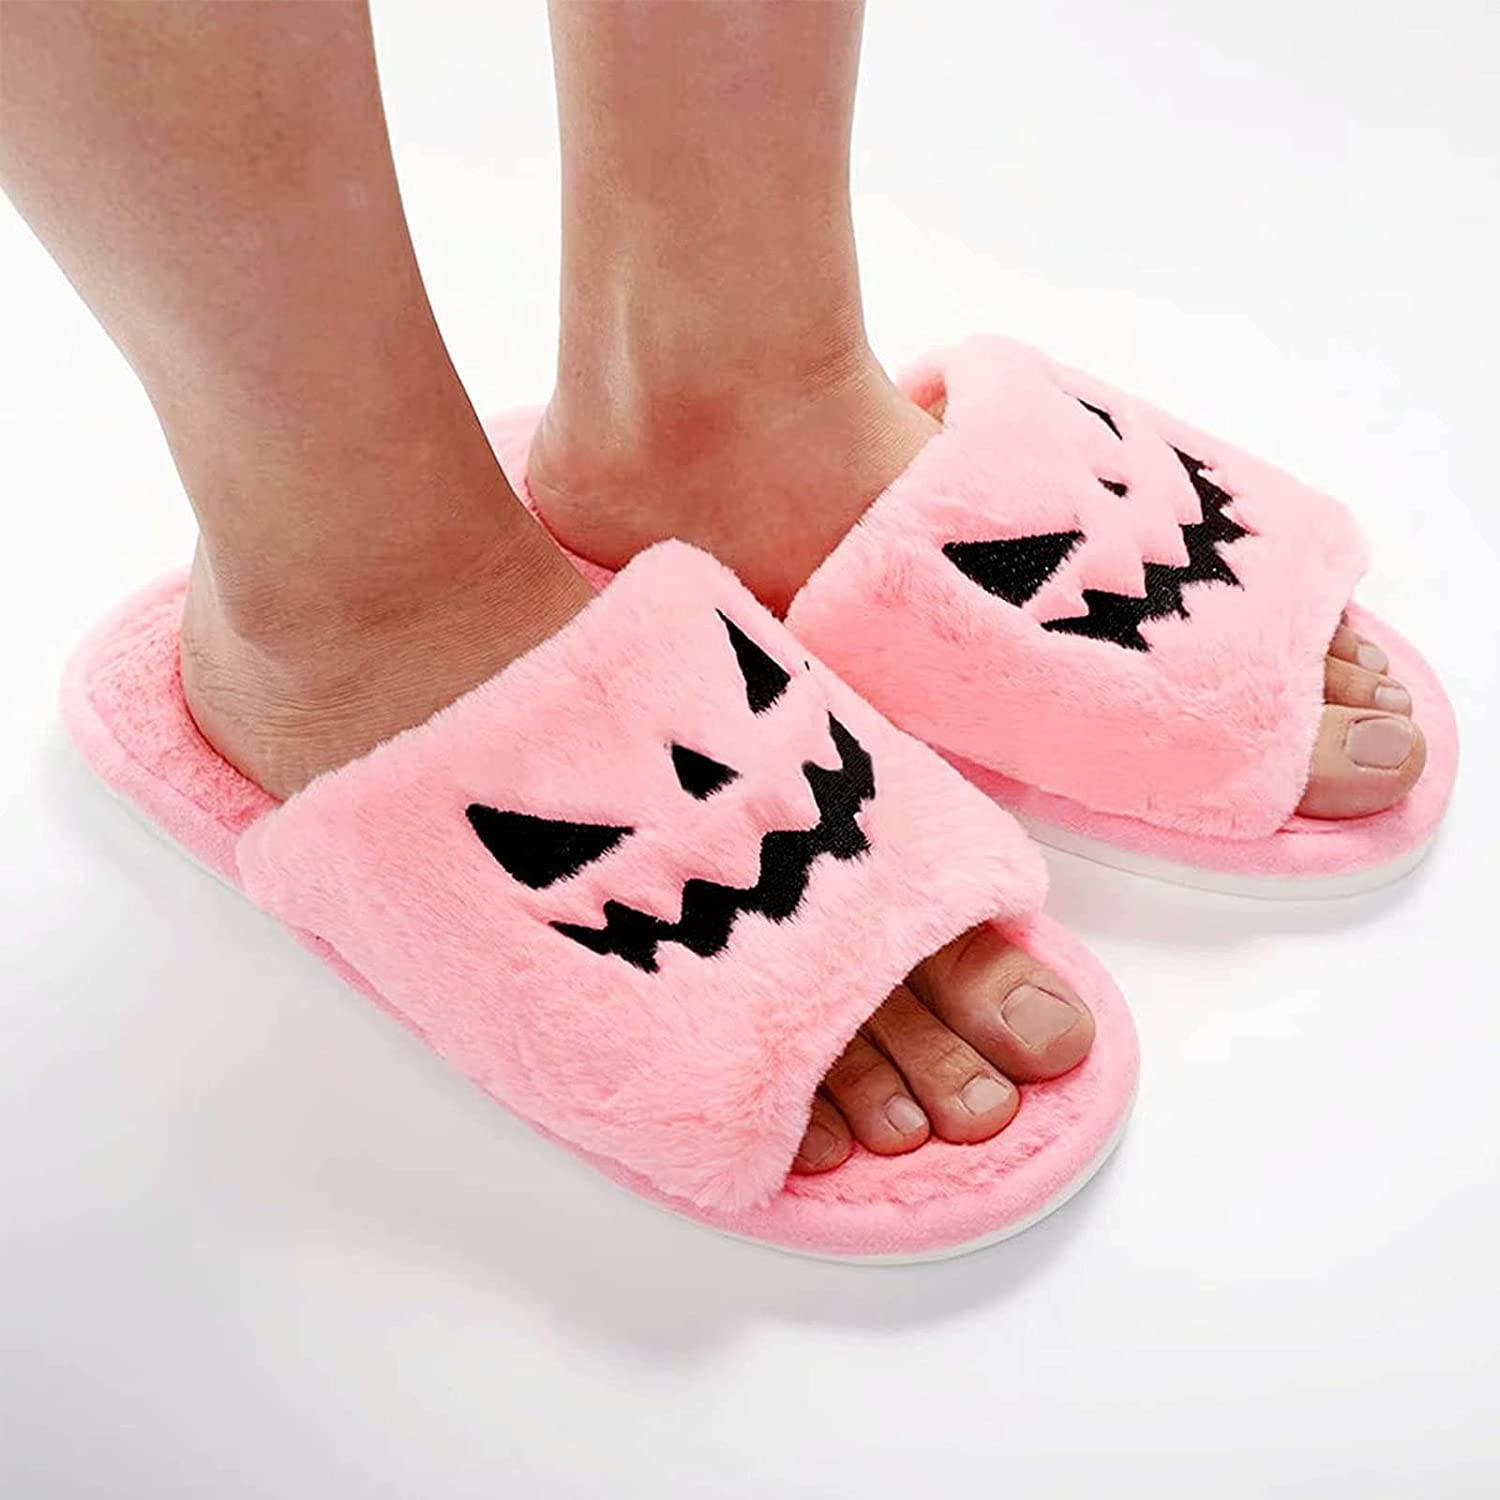 Retro Fashion Slippers,Soft Plush Comfy Fuzzy Warm Slip-on Slippers,Faux Fur Anti-Skid Sole Indoor House Slipper for Men and Women